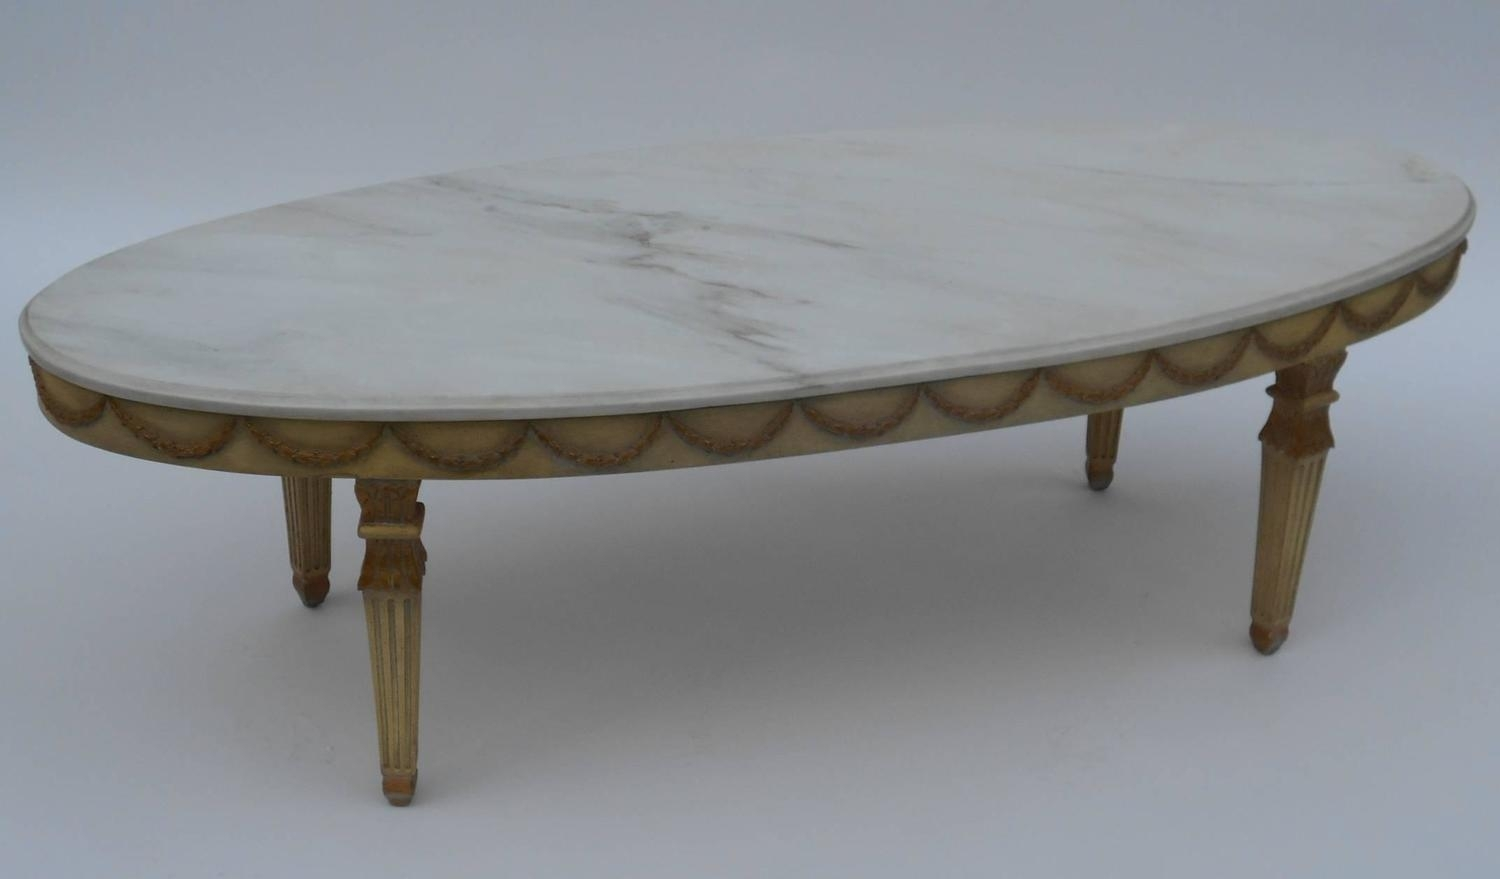 Italian Marble Top Coffee Table At 1Stdibs Regarding Smart Round Marble Top Coffee Tables (View 16 of 30)